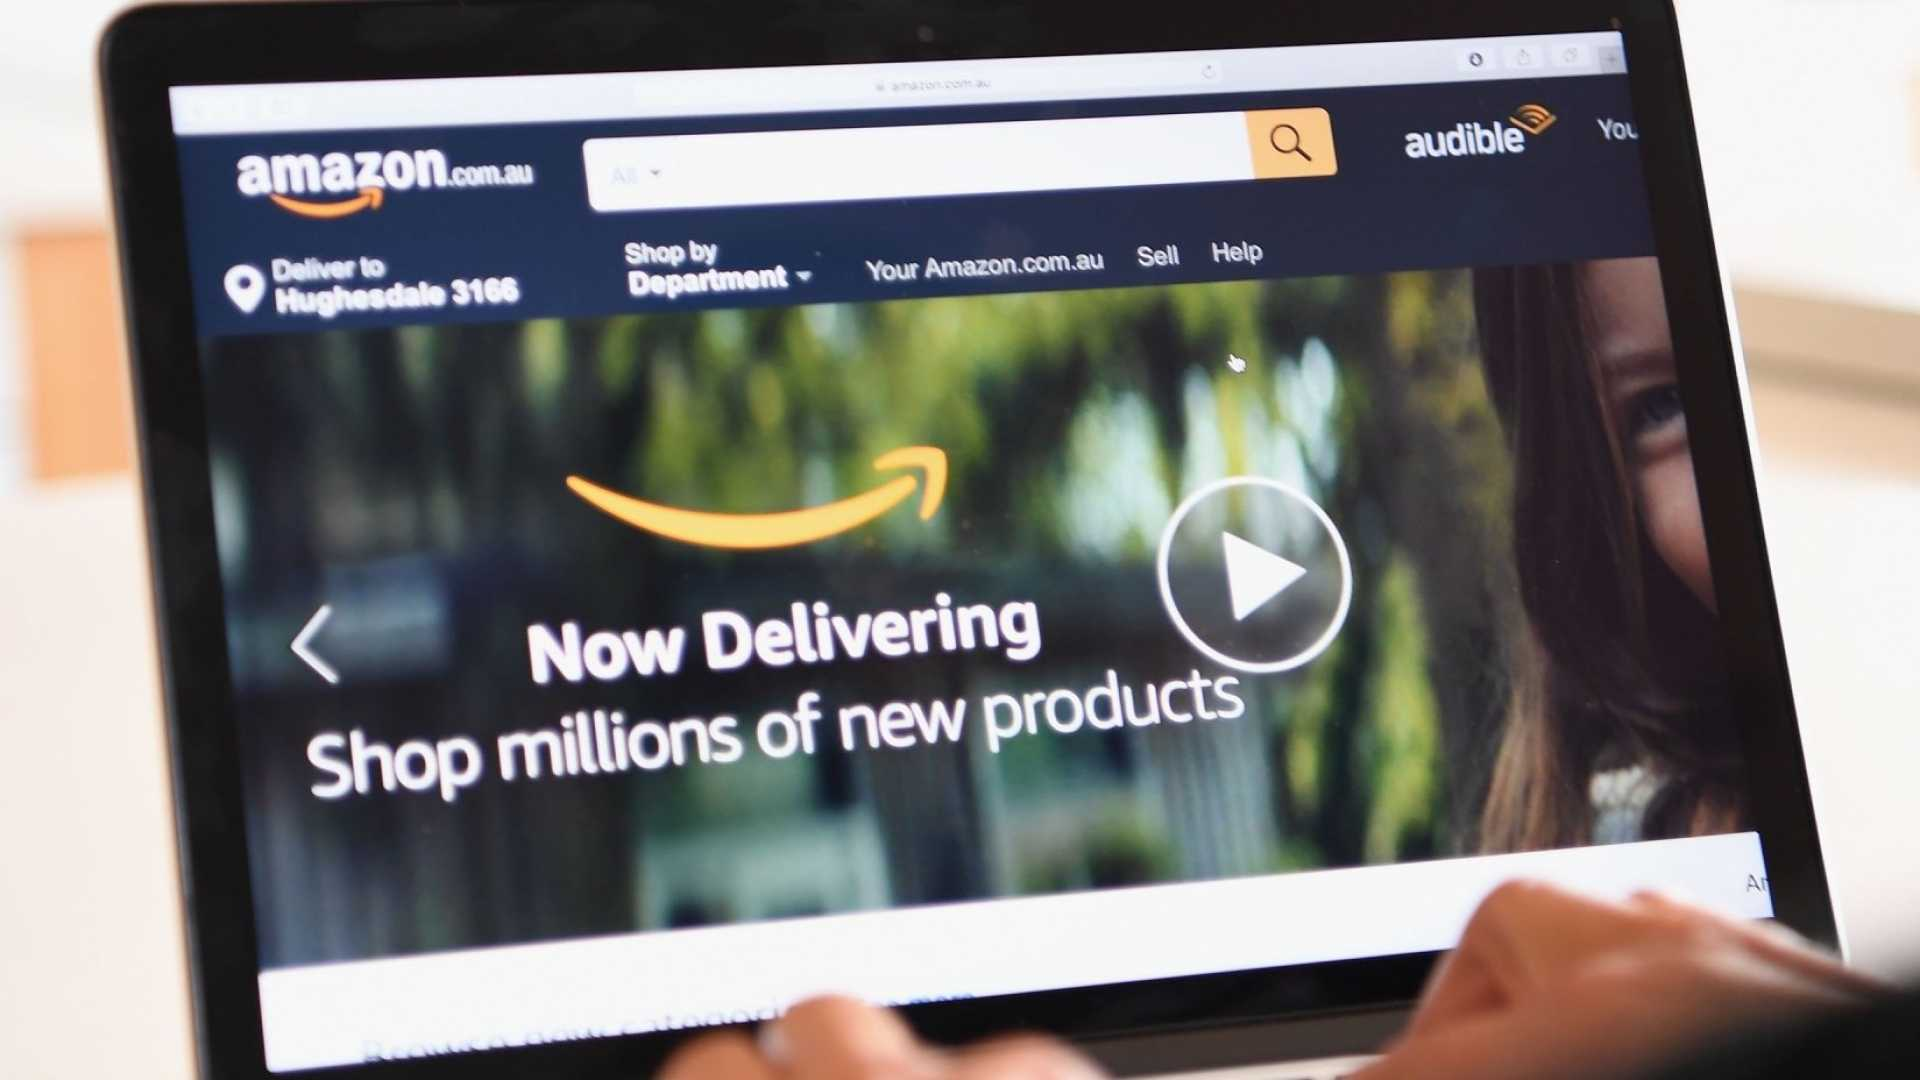 Amazon Is Reportedly Manipulating Search Results to Boost Its Own Products